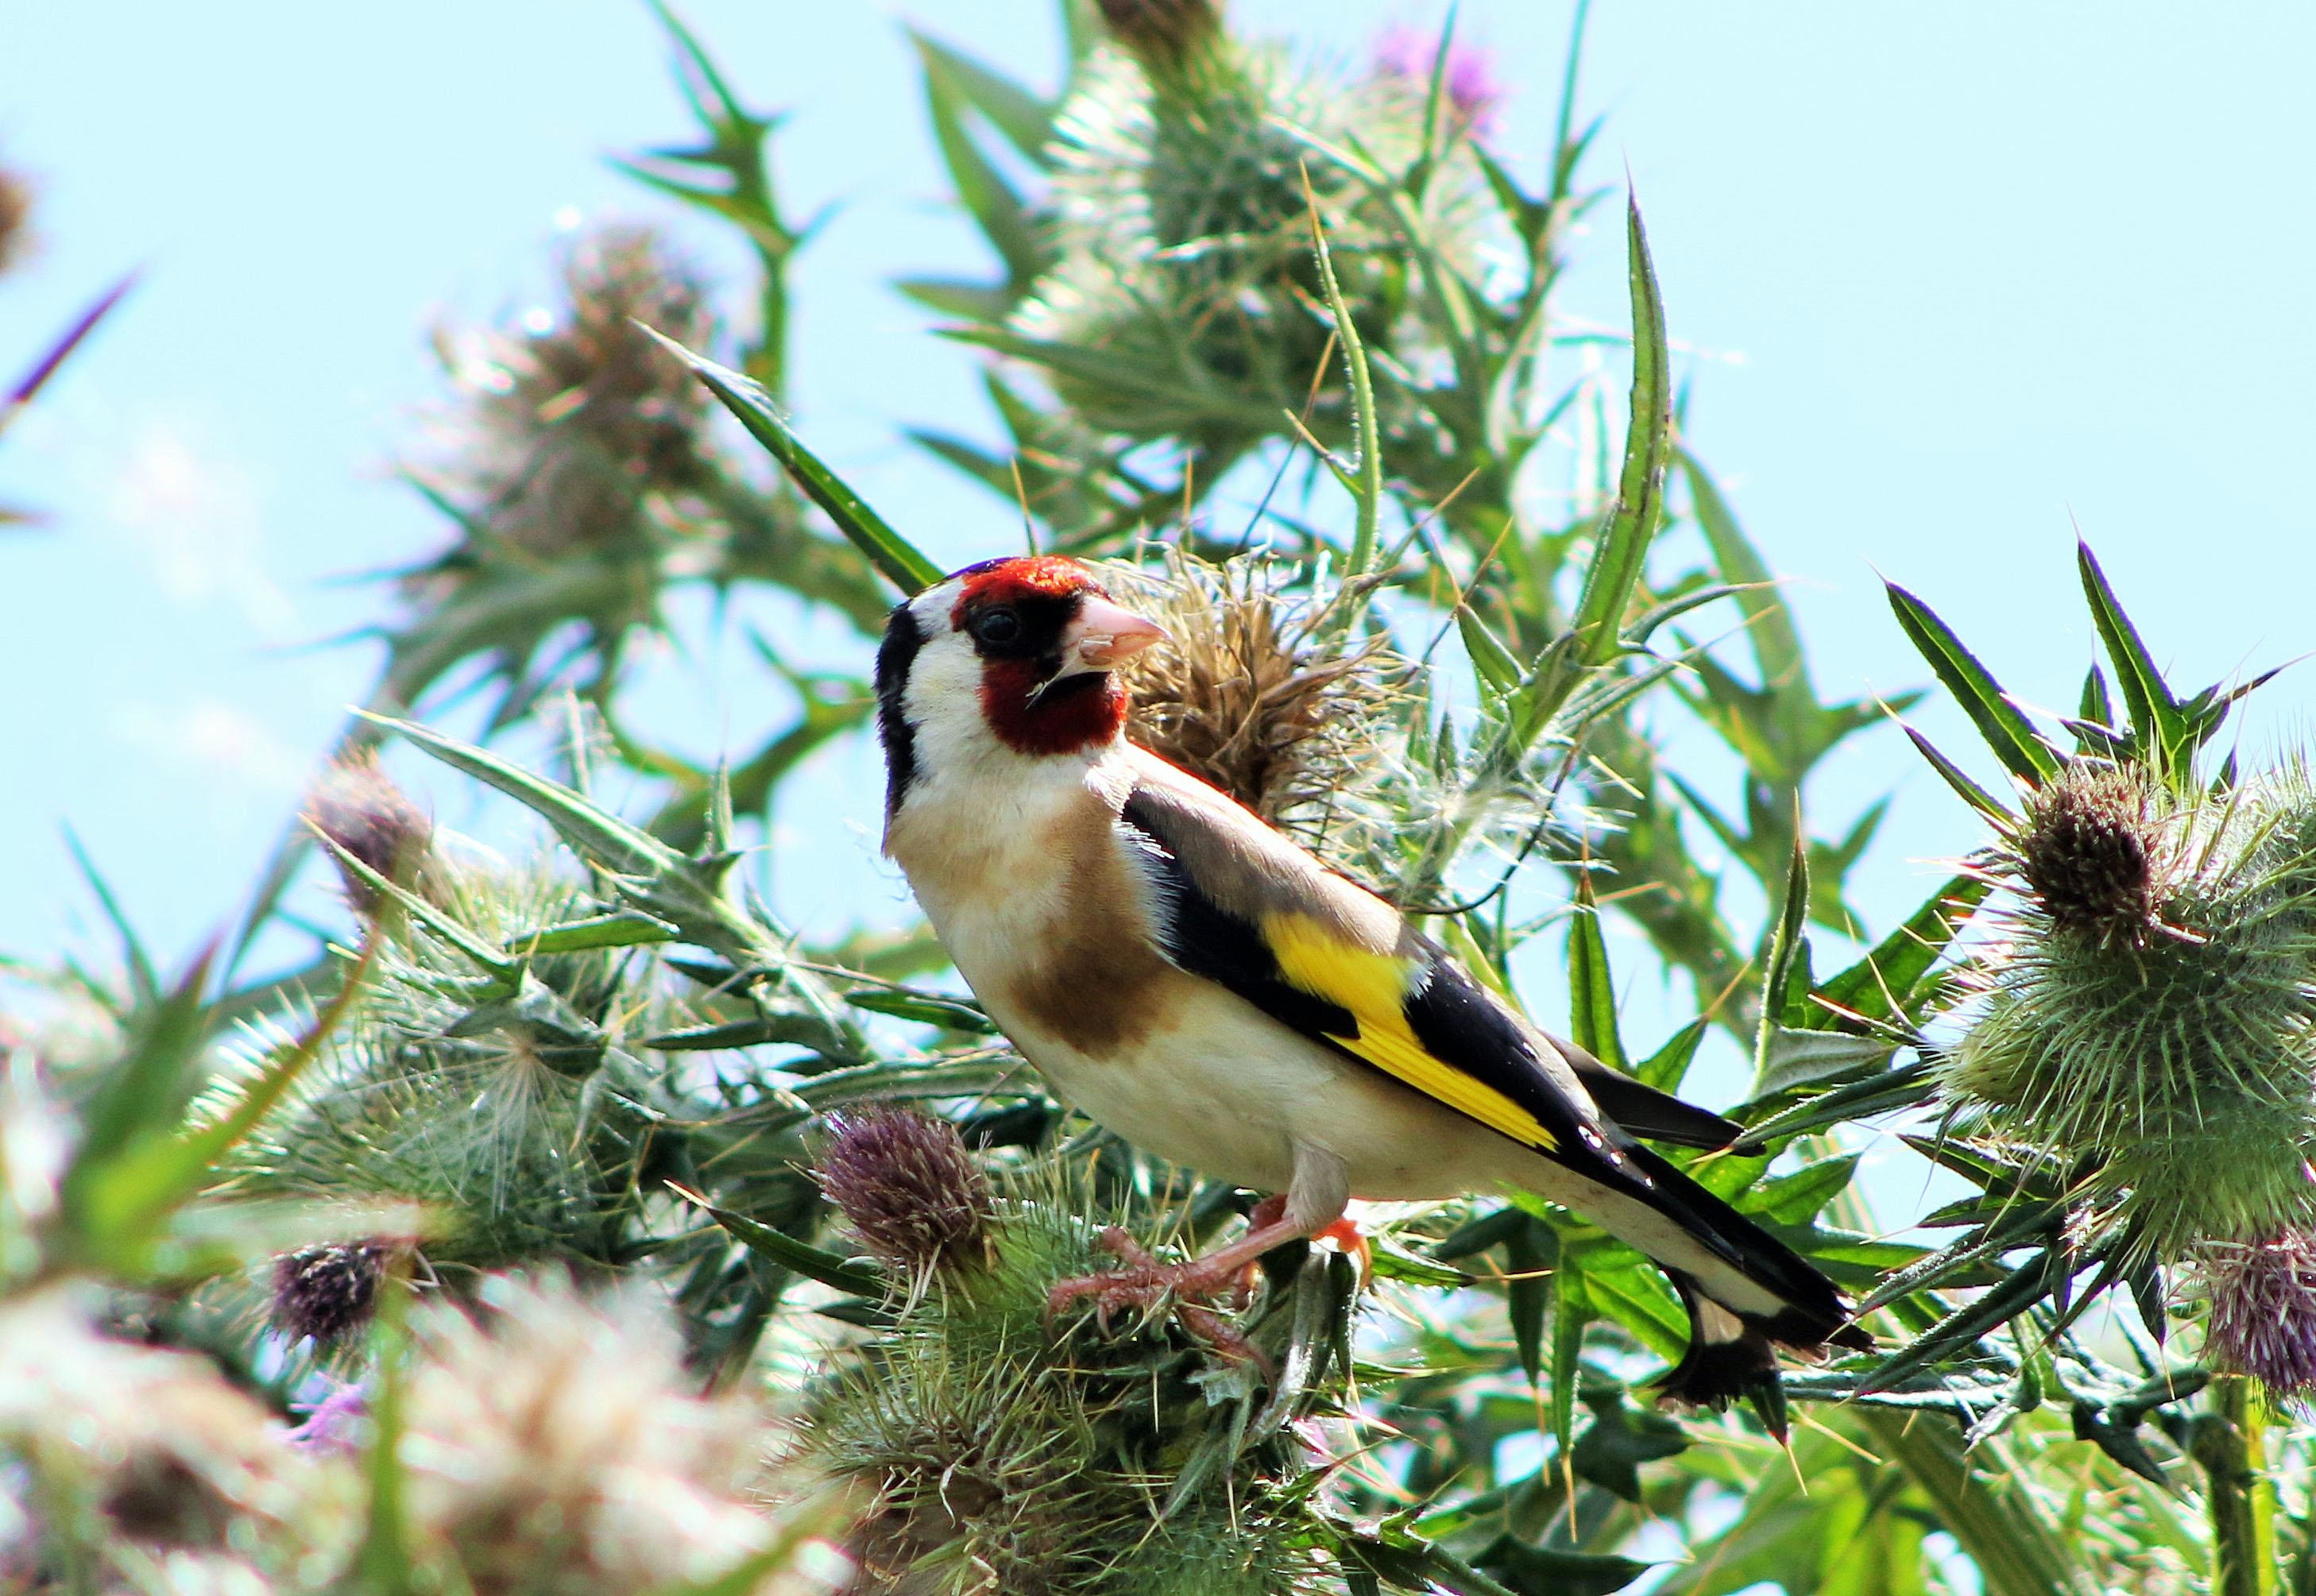 A Goldfinch in the Church carpark, photographed by Brian Jennings